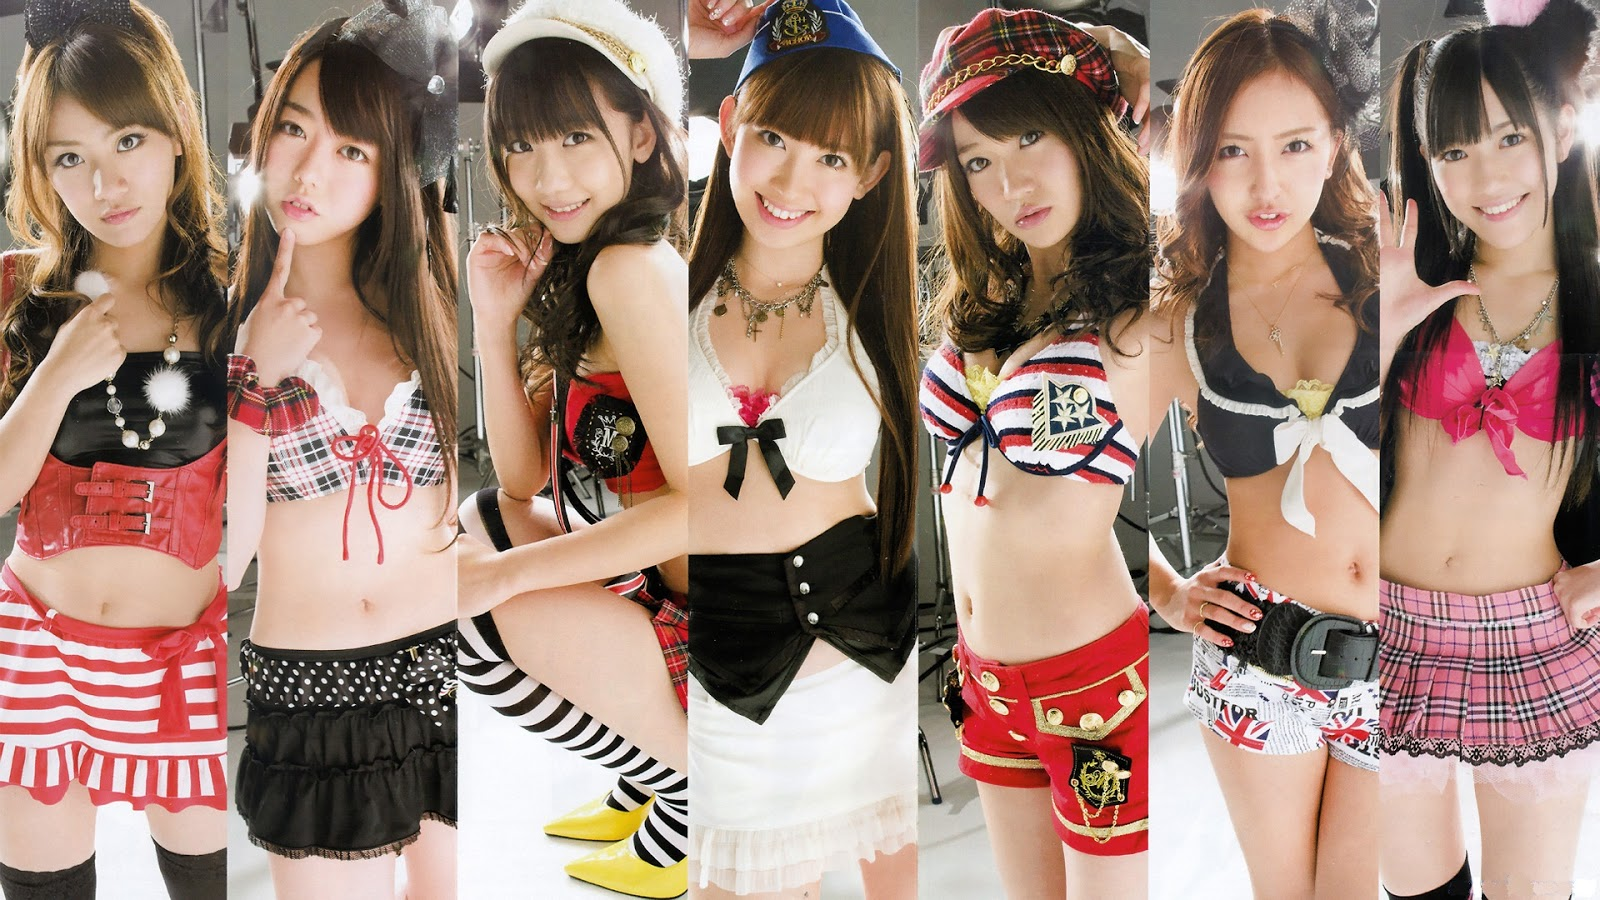 akb48 wallpaper hd 3 akb48 wallpaper hd 4 akb48 wallpaper